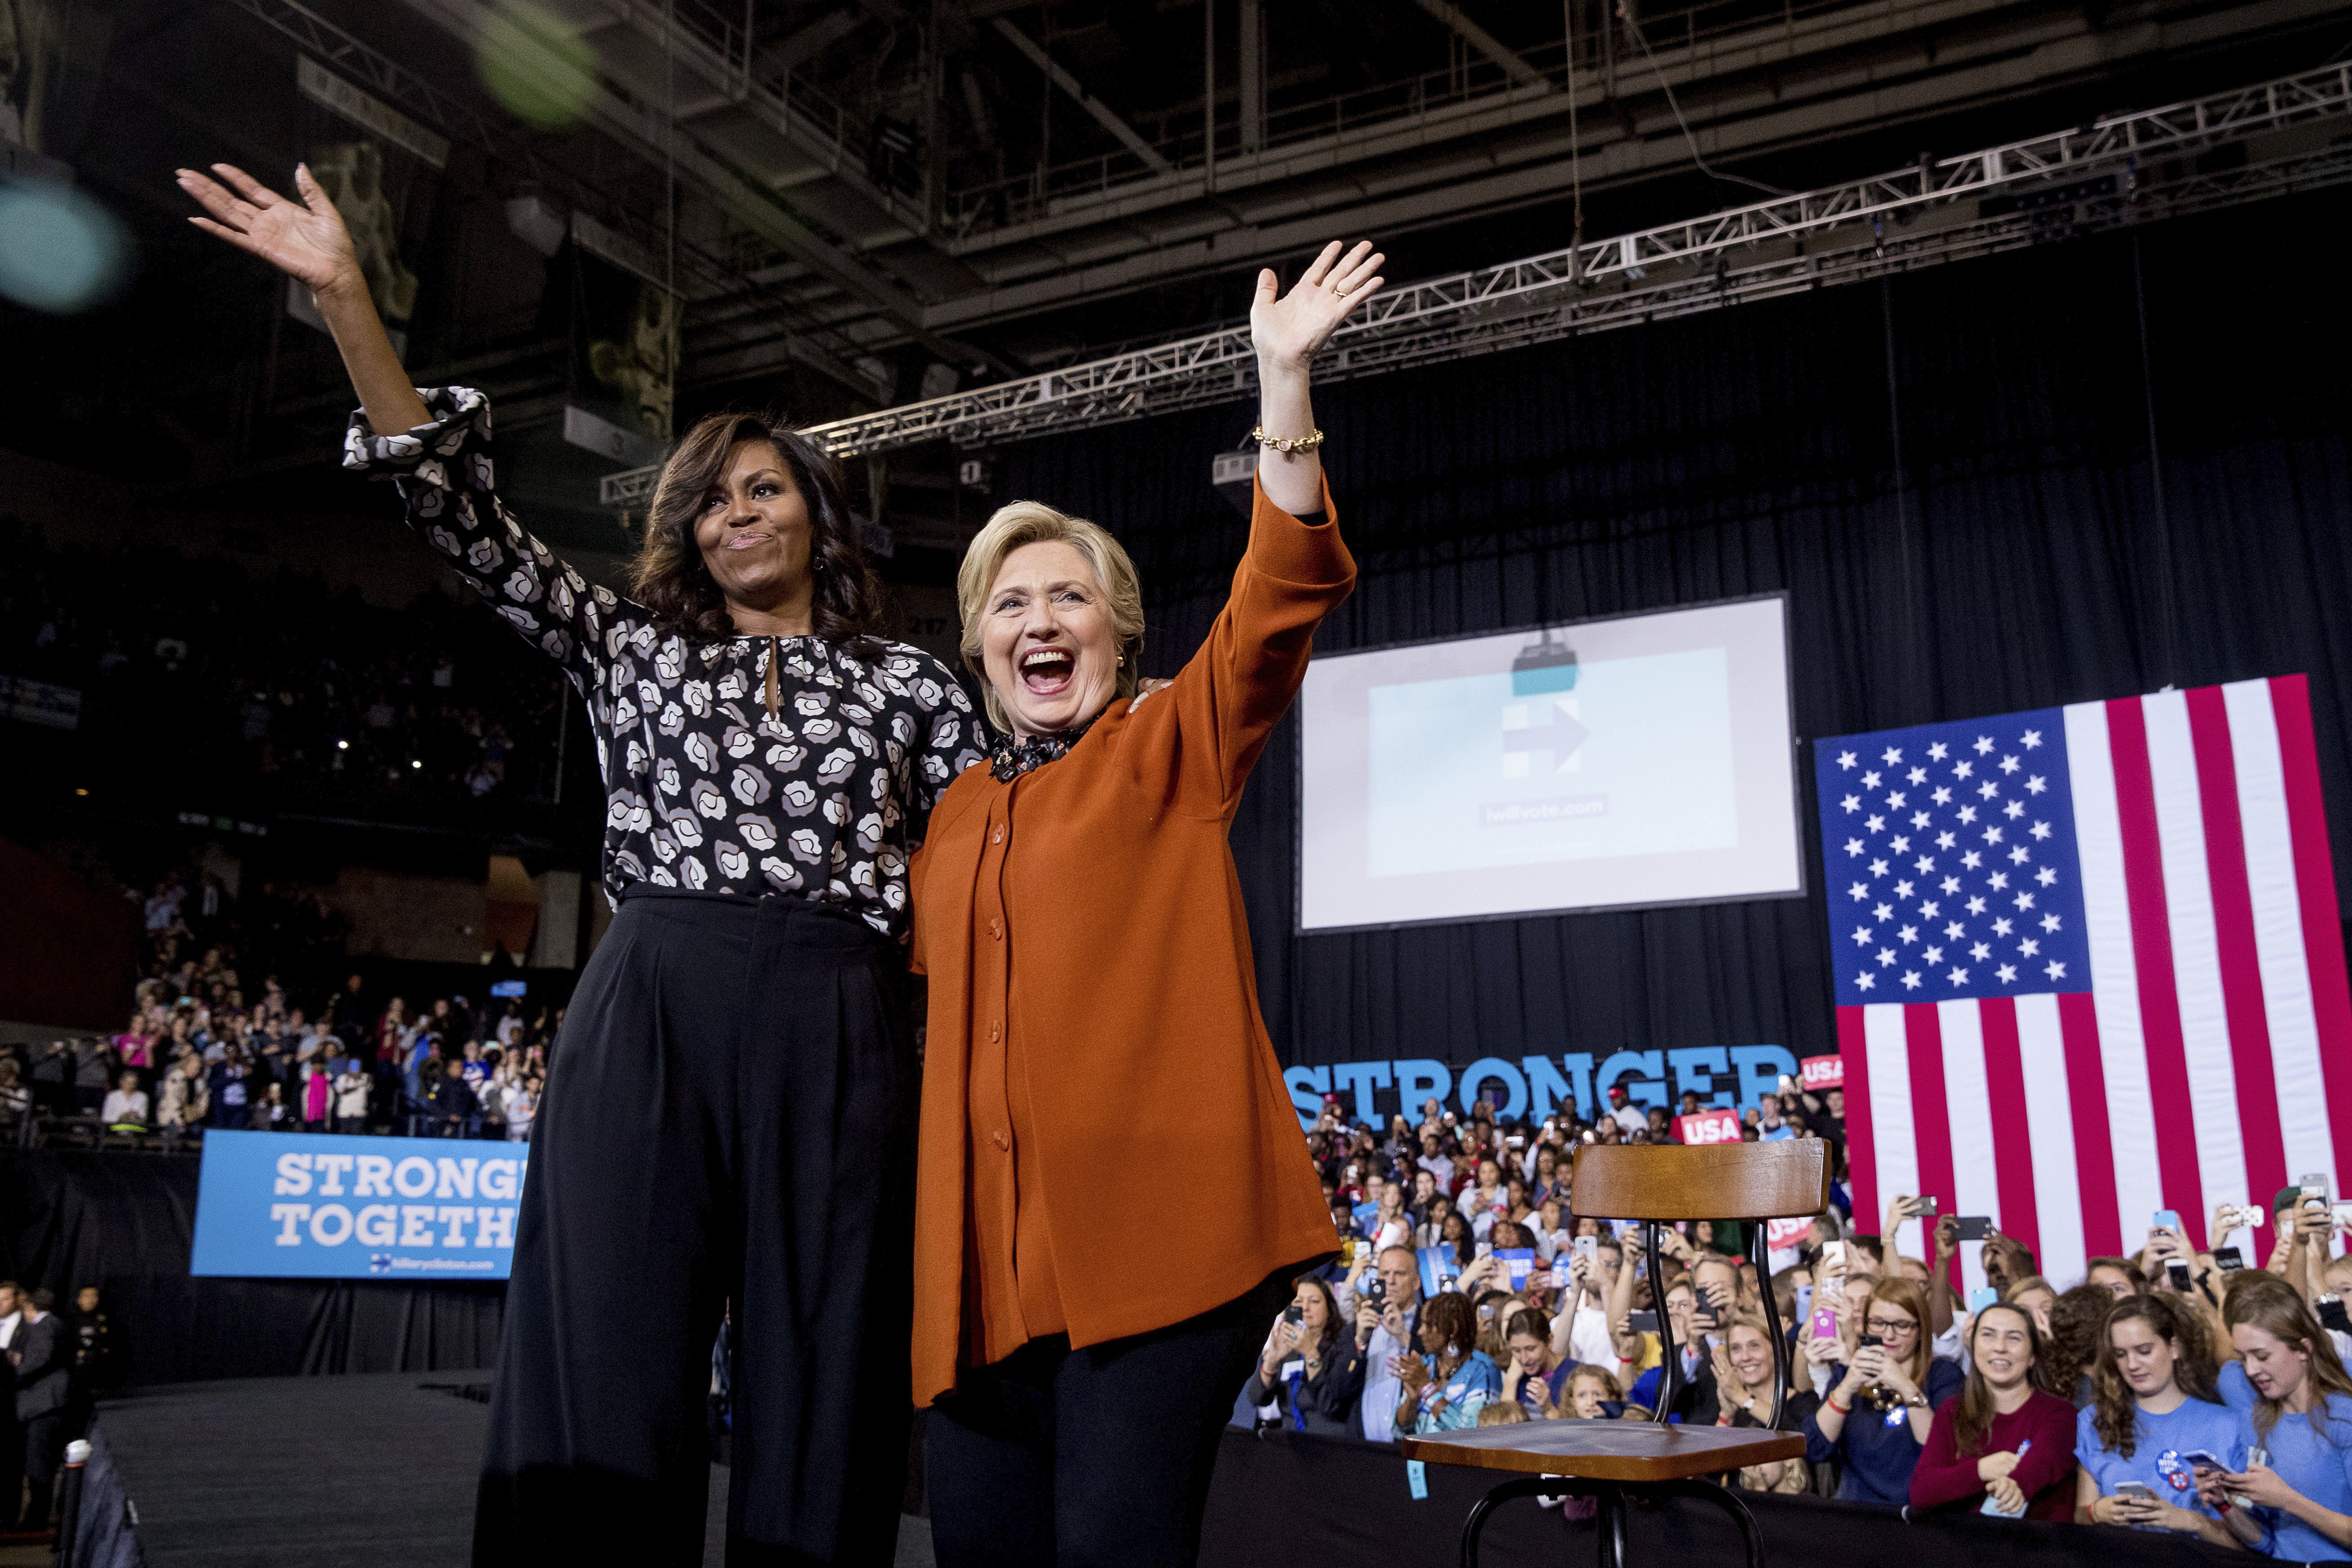 Michelle Obama and Hillary Clinton wave together after speaking at a campaign rally in Winston-Salem, NC, on Oct. 27, 2016.